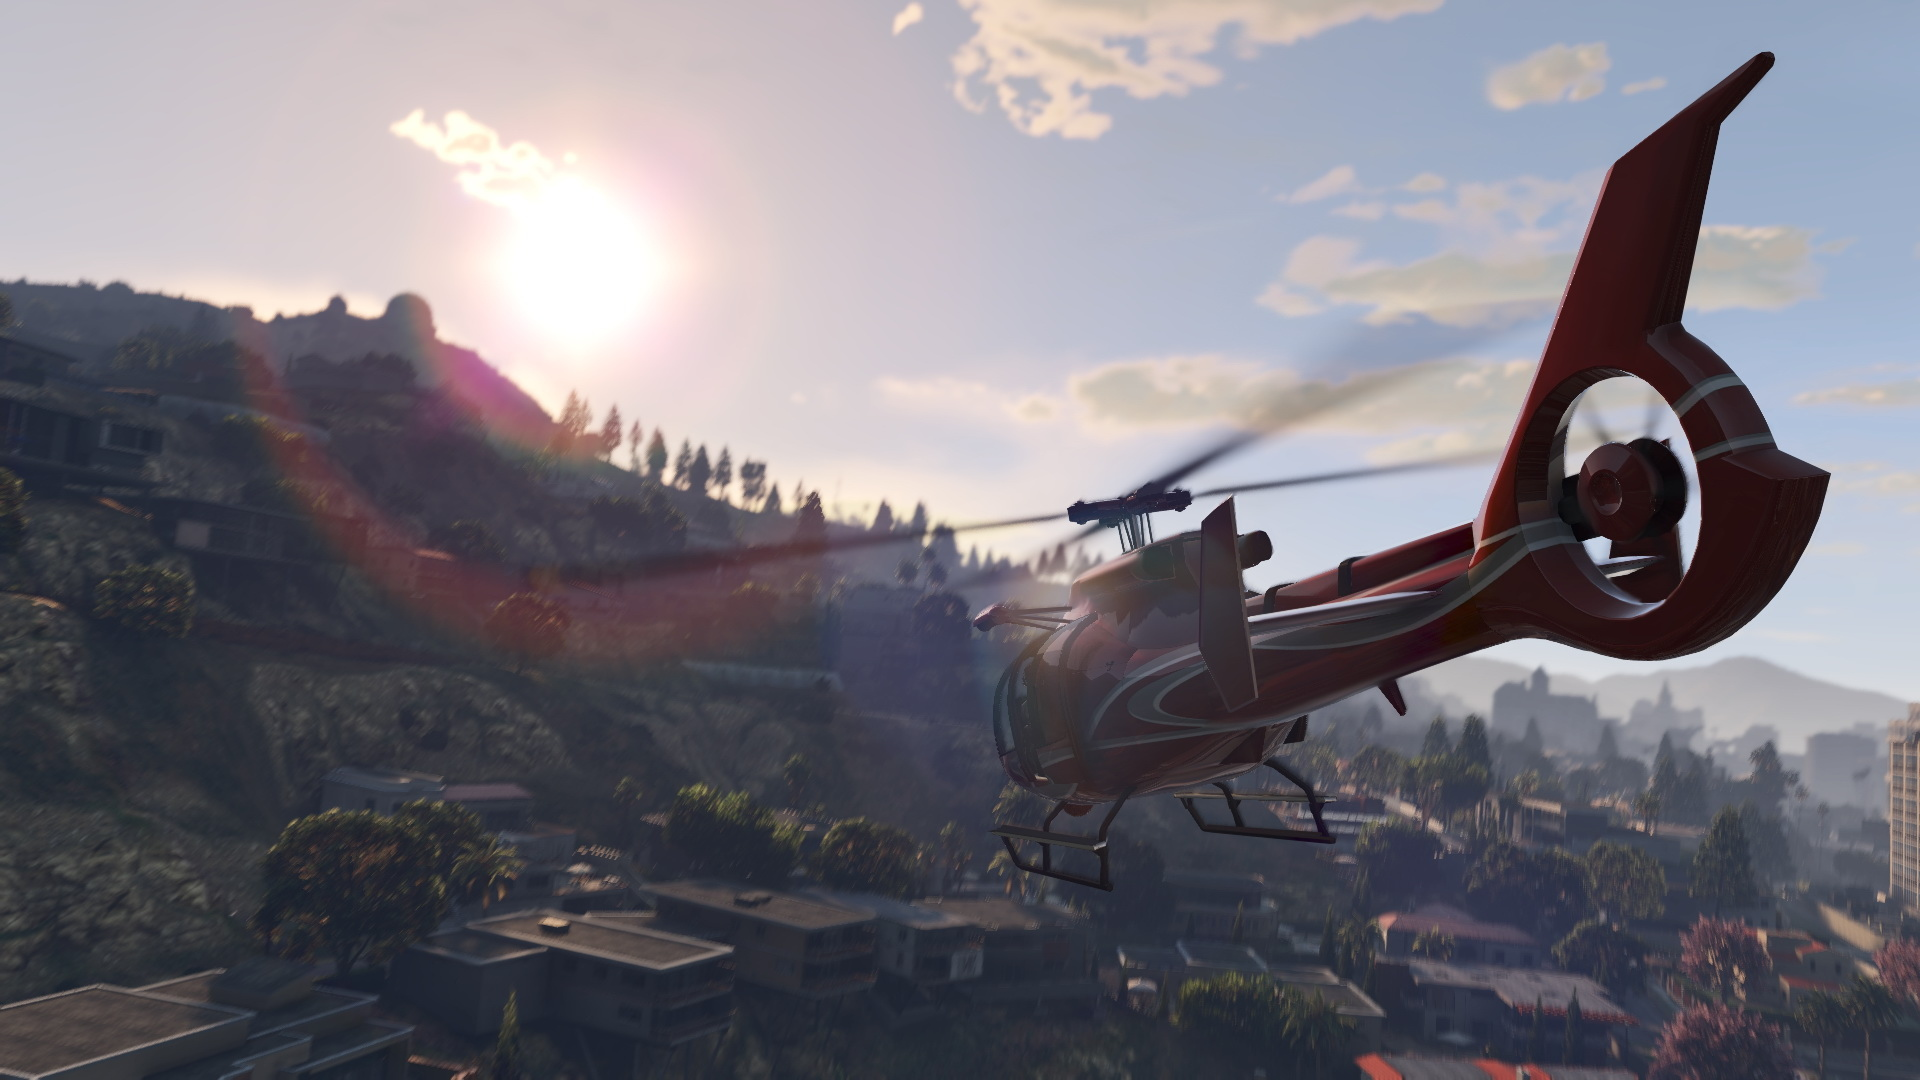 grand theft auto v wallpapers hd